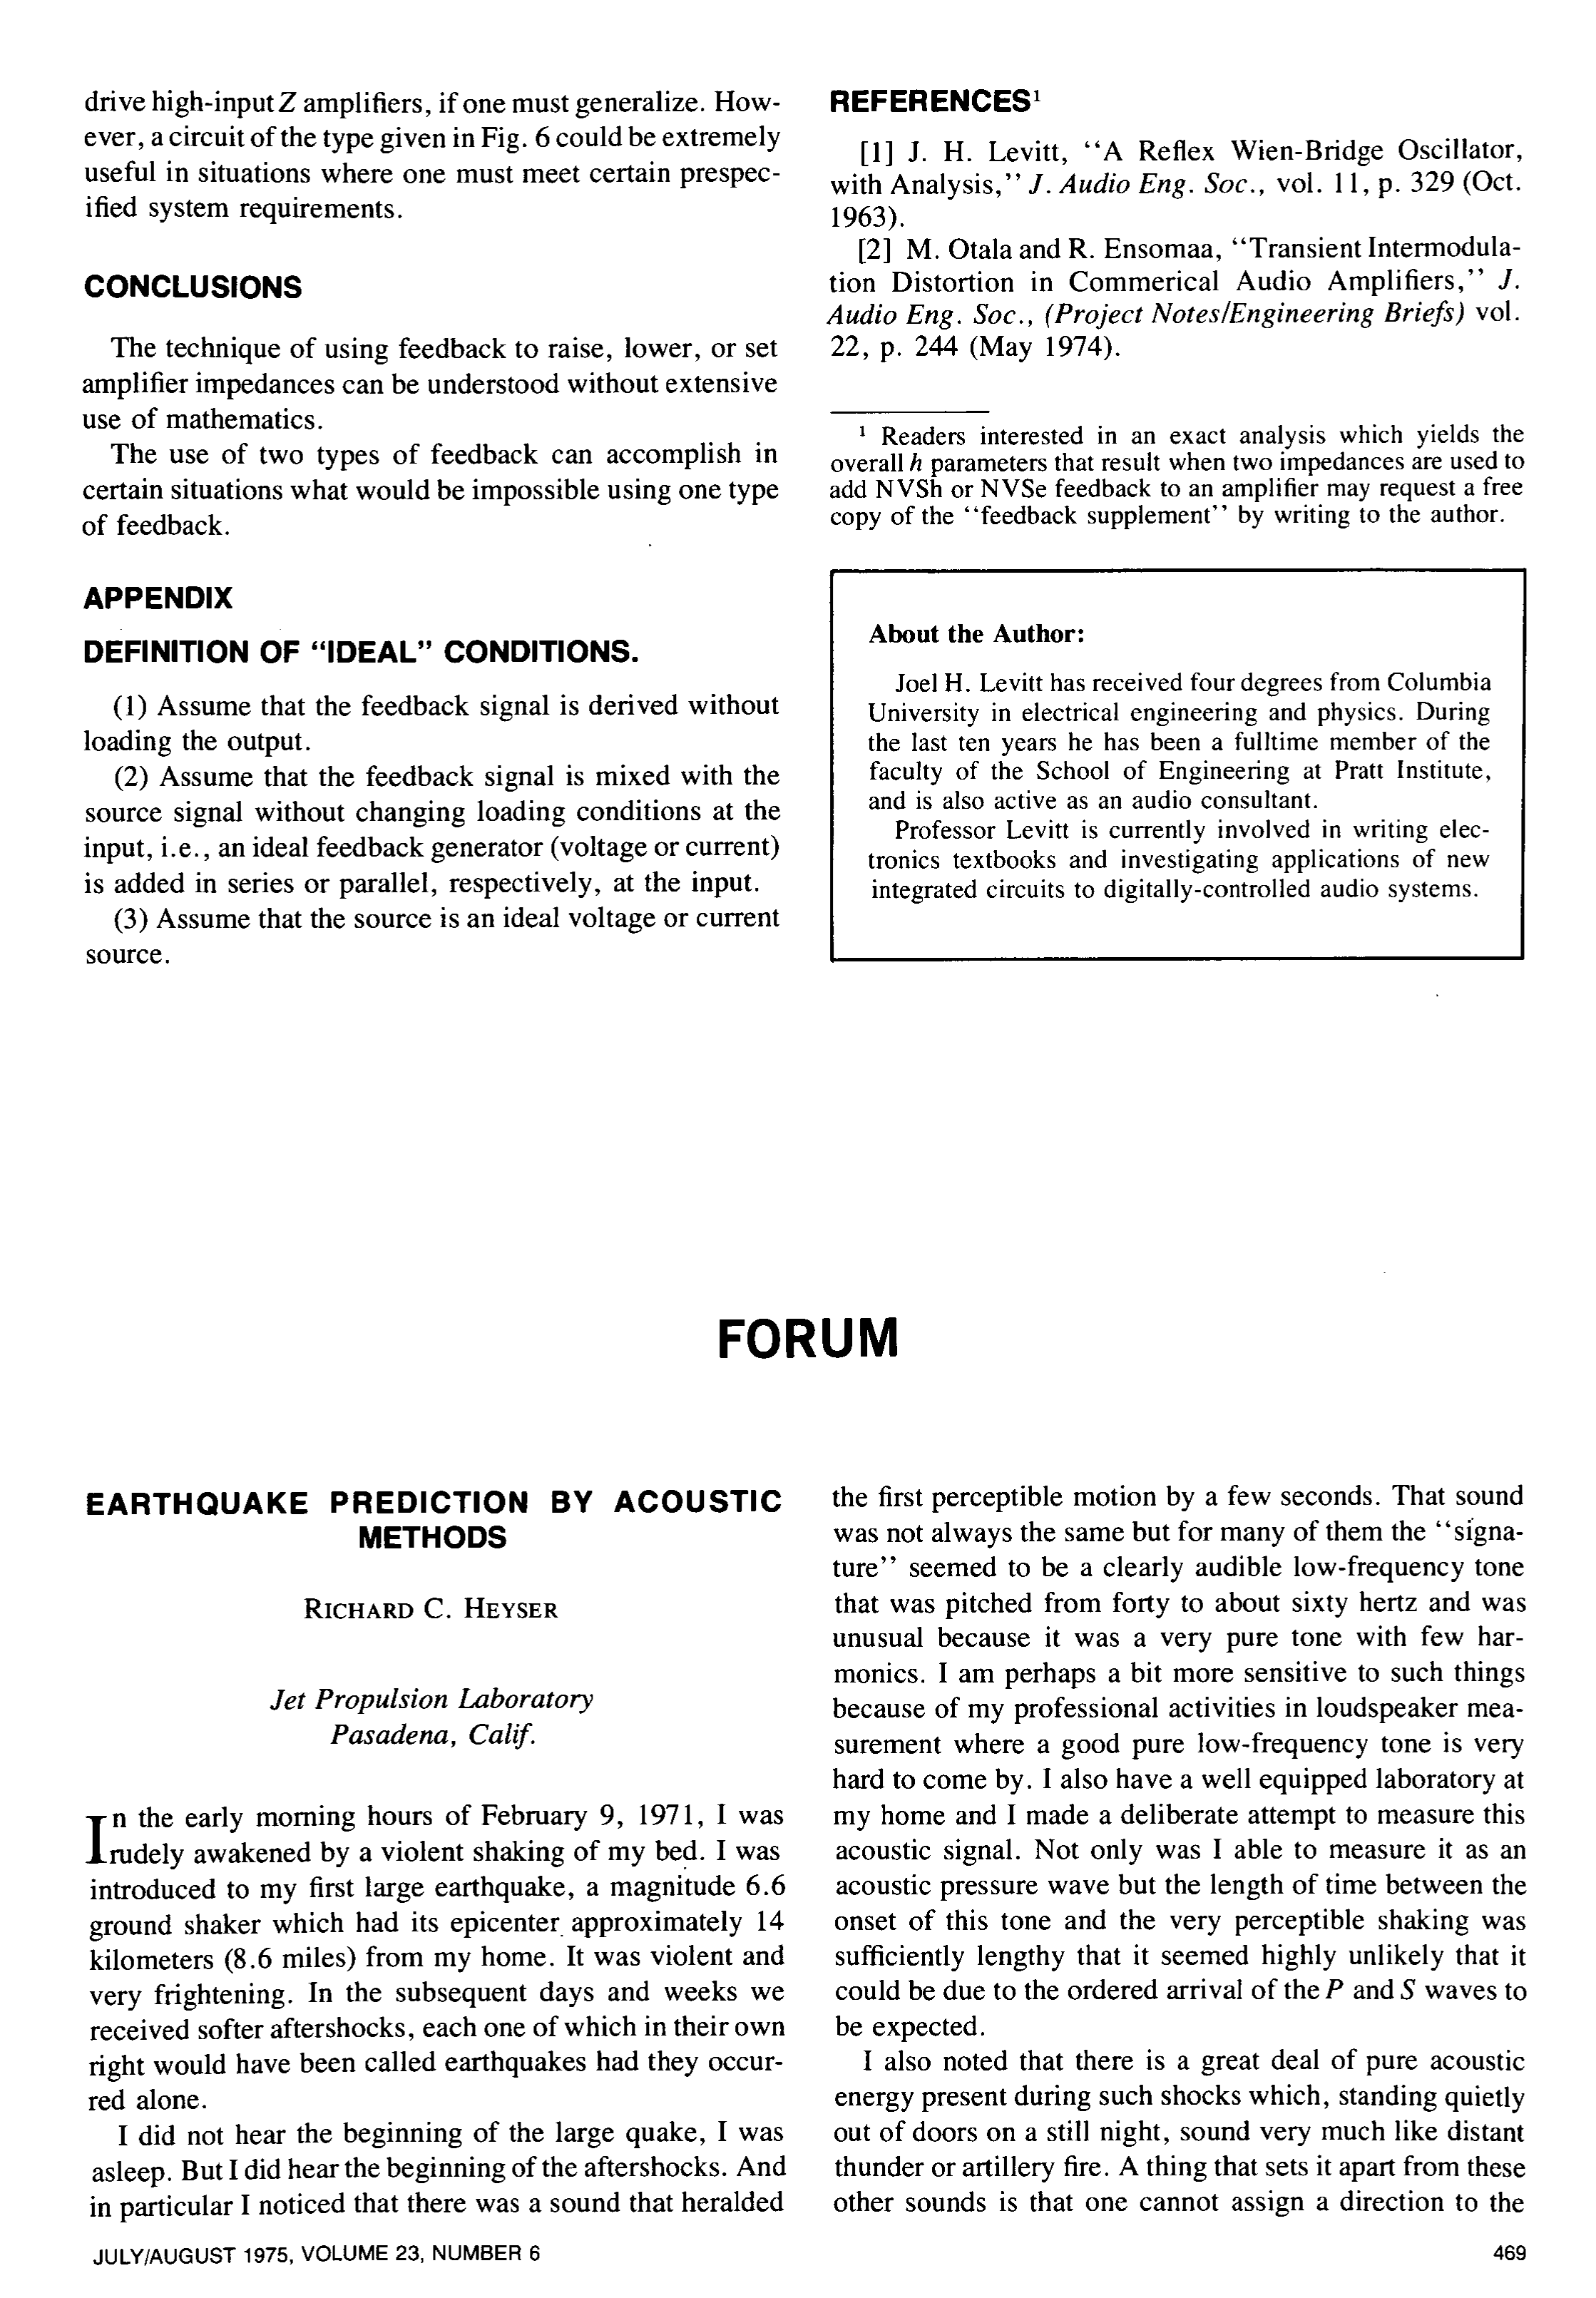 Aes E Library Earthquake Prediction By Acoustic Methods Definition Integrated Circuit